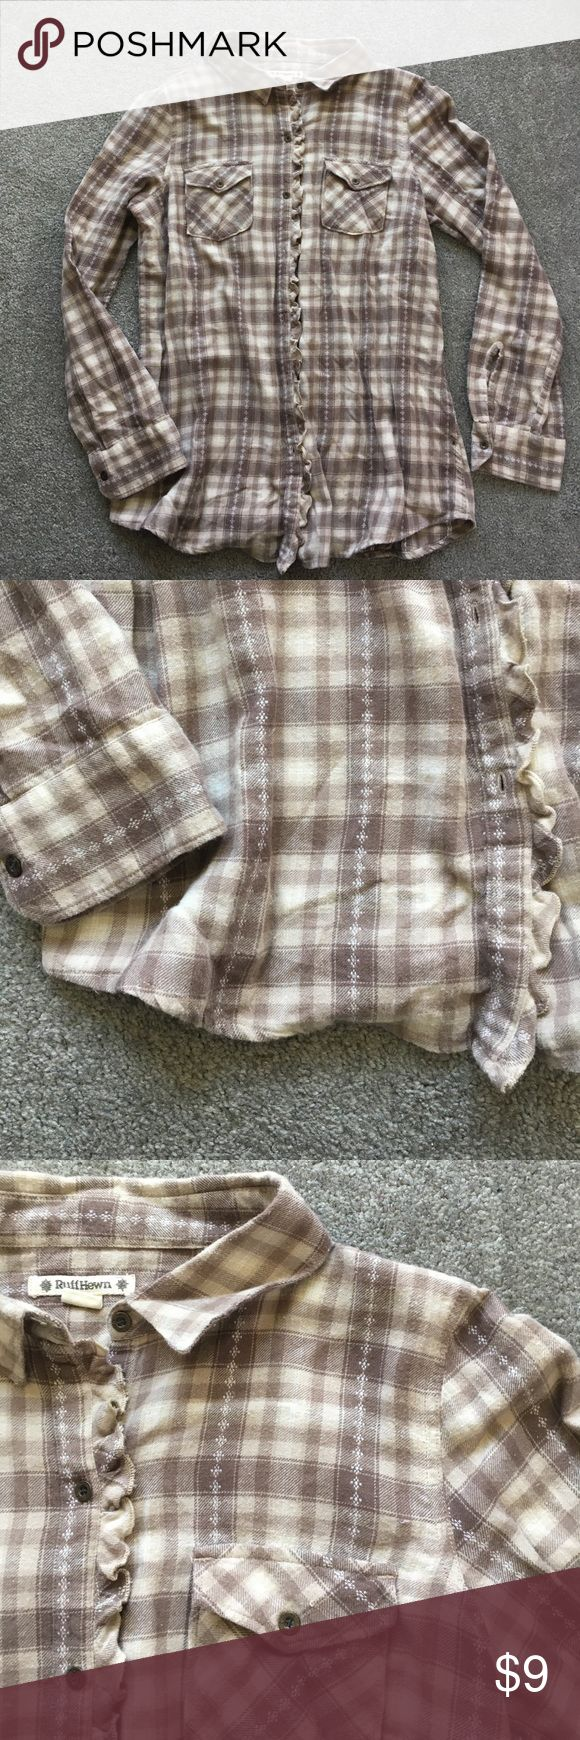 Super cozy ruff hewn plaid button down It's super comfy! It is brand new without the tags! 20% off bundles and excepting all reasonable offers!! ruff hewn Tops Button Down Shirts